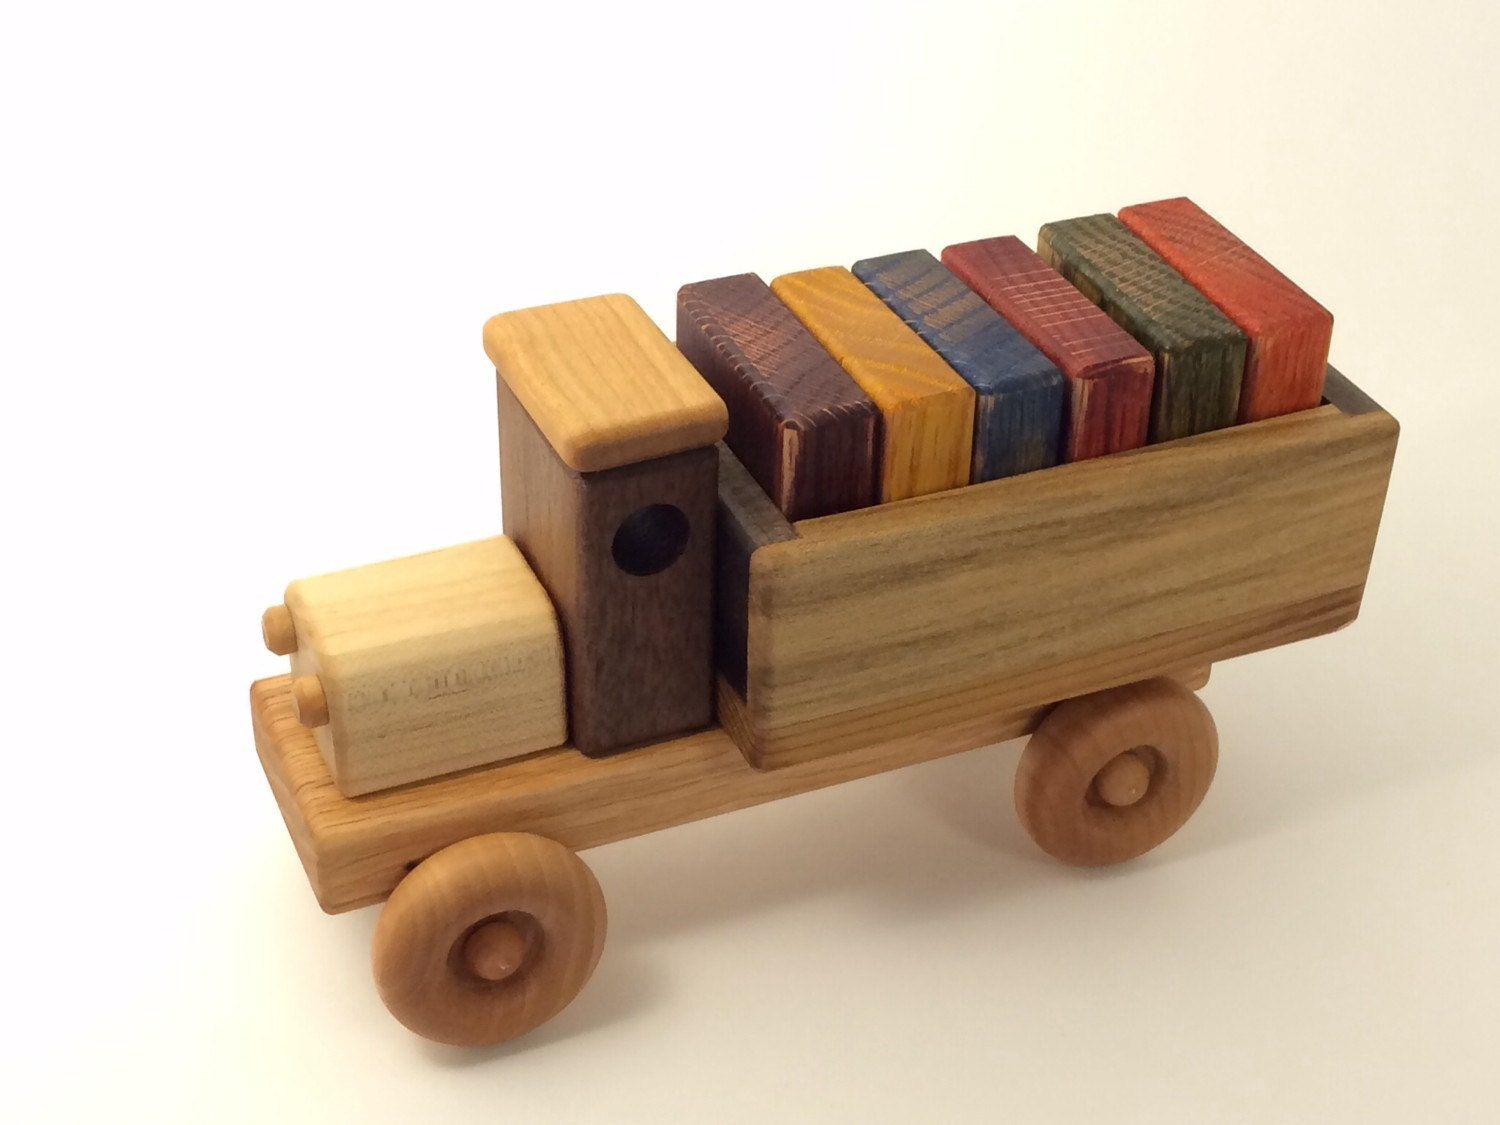 Wooden Toy Cars And Trucks : Wooden toy truck w colored blocks